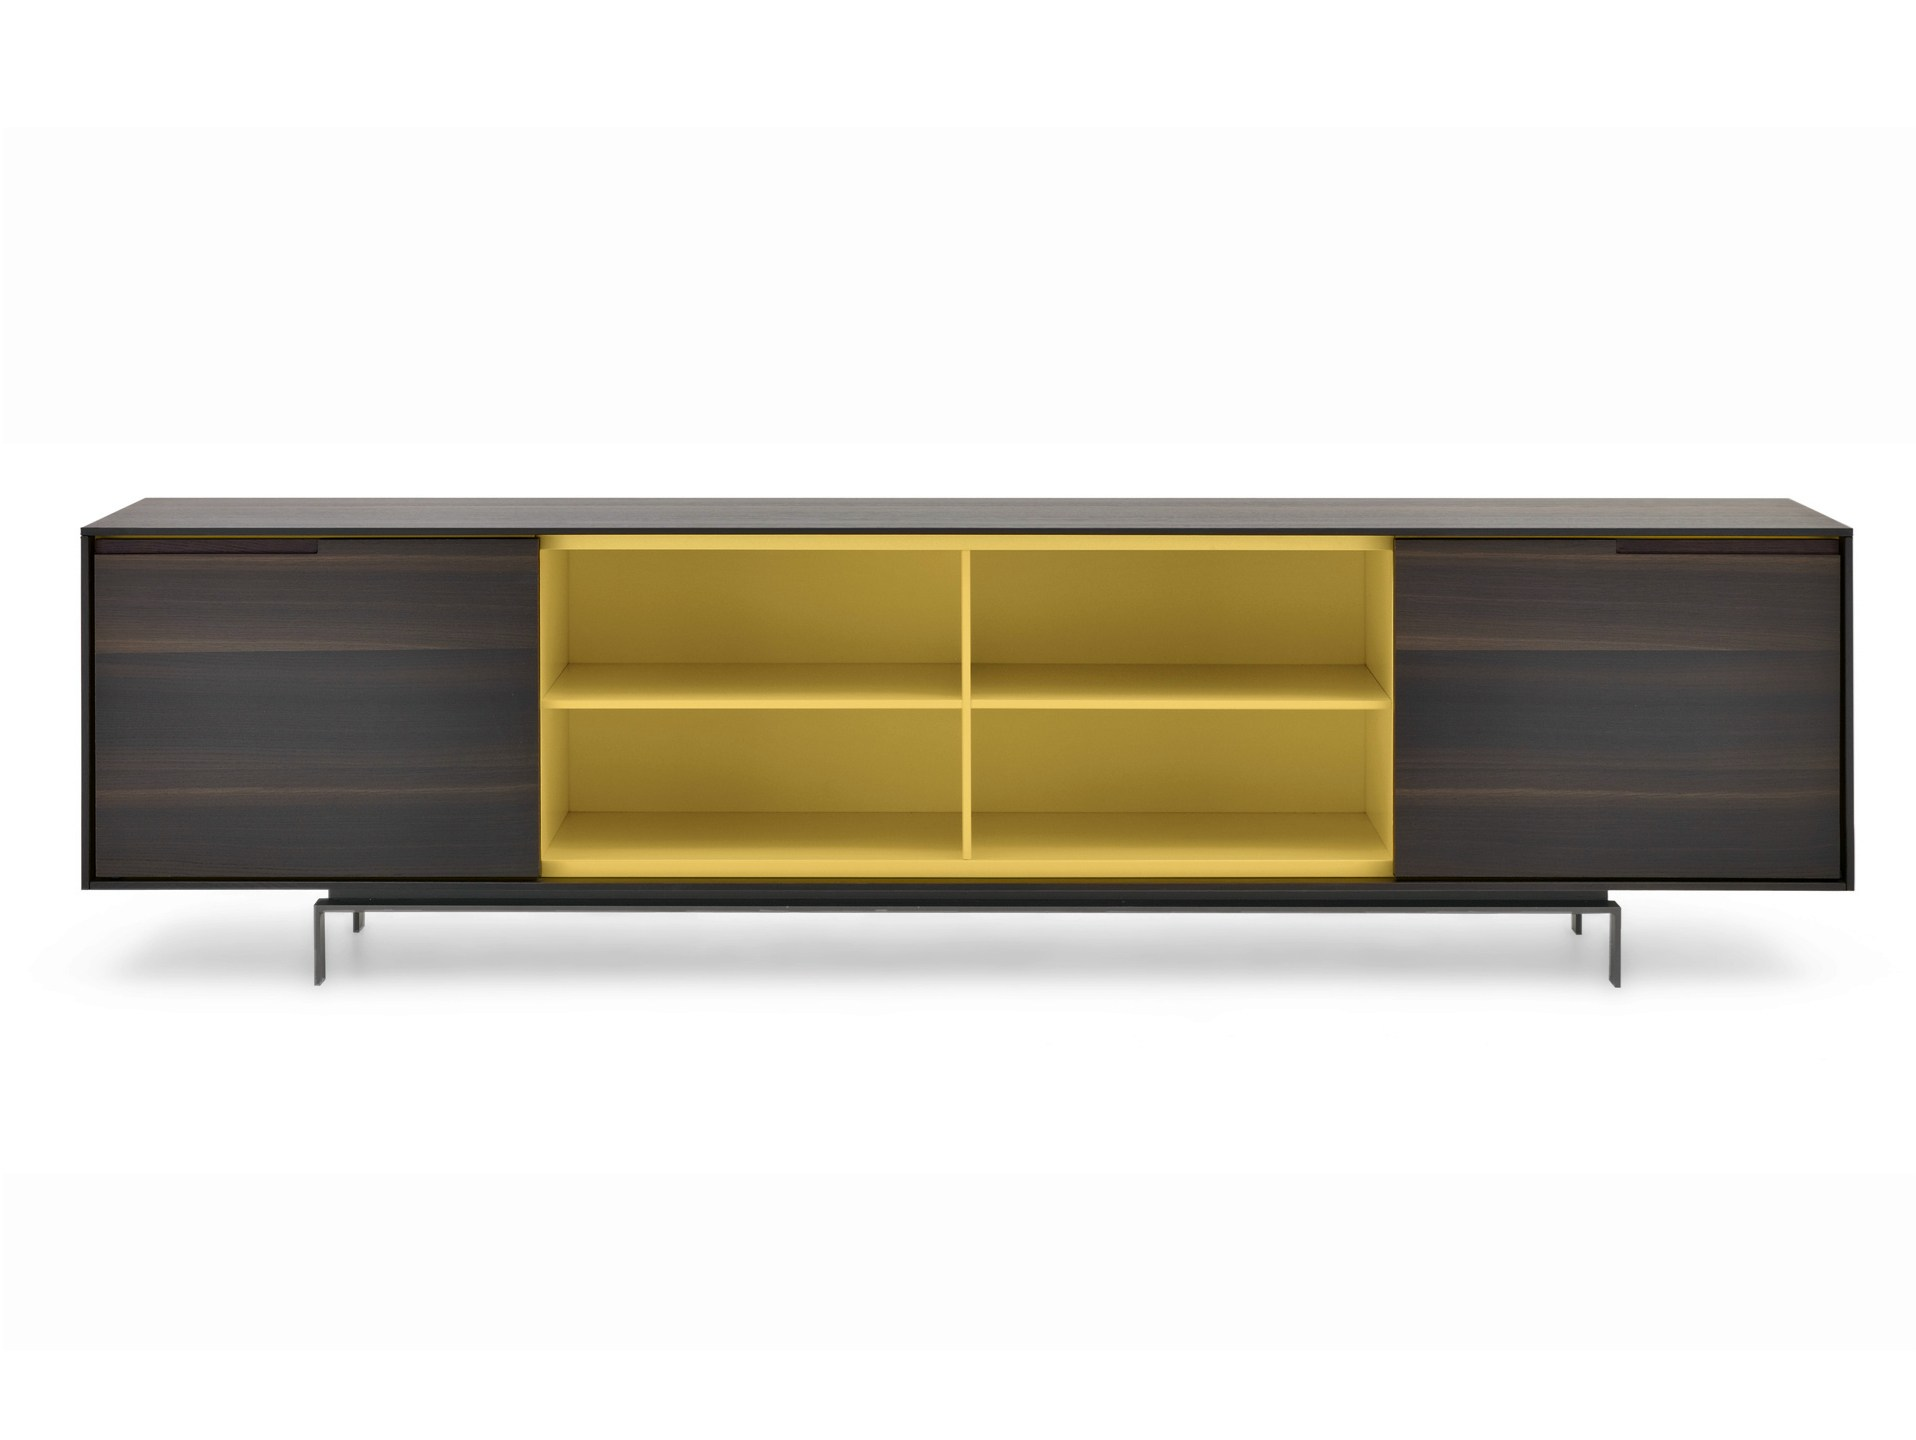 Wooden Sideboard With Doors AXIA By Poliform Design Paolo Piva